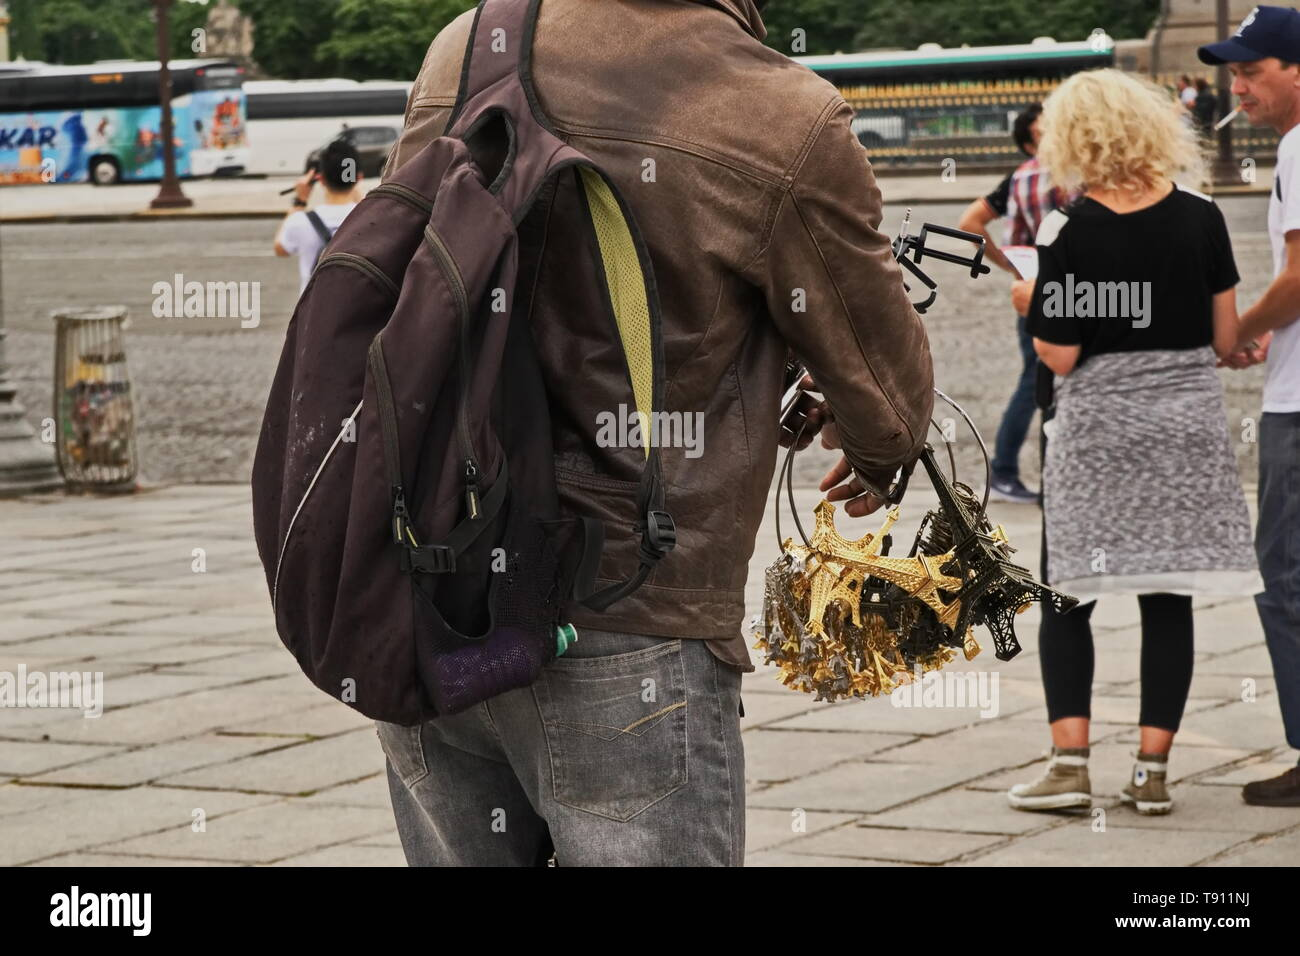 Illegal street vendor taking inventory of his merchandise while looking on at tourists Stock Photo